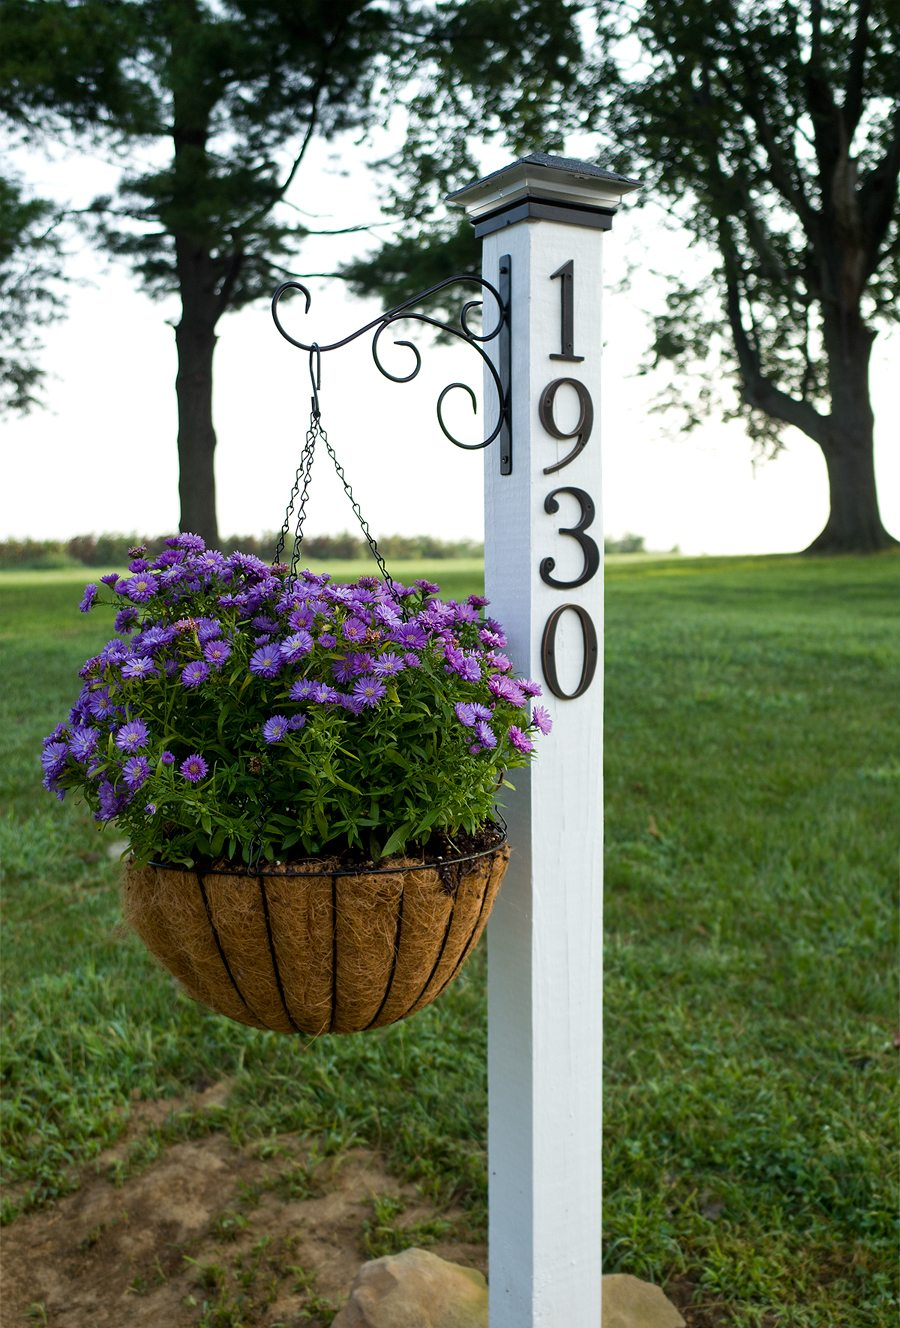 24 Low Cost Ways To Power Up Your Homes Curb Appeal: 24 Low-Cost Ways To Instantly Boost Your Home's Curb Appeal